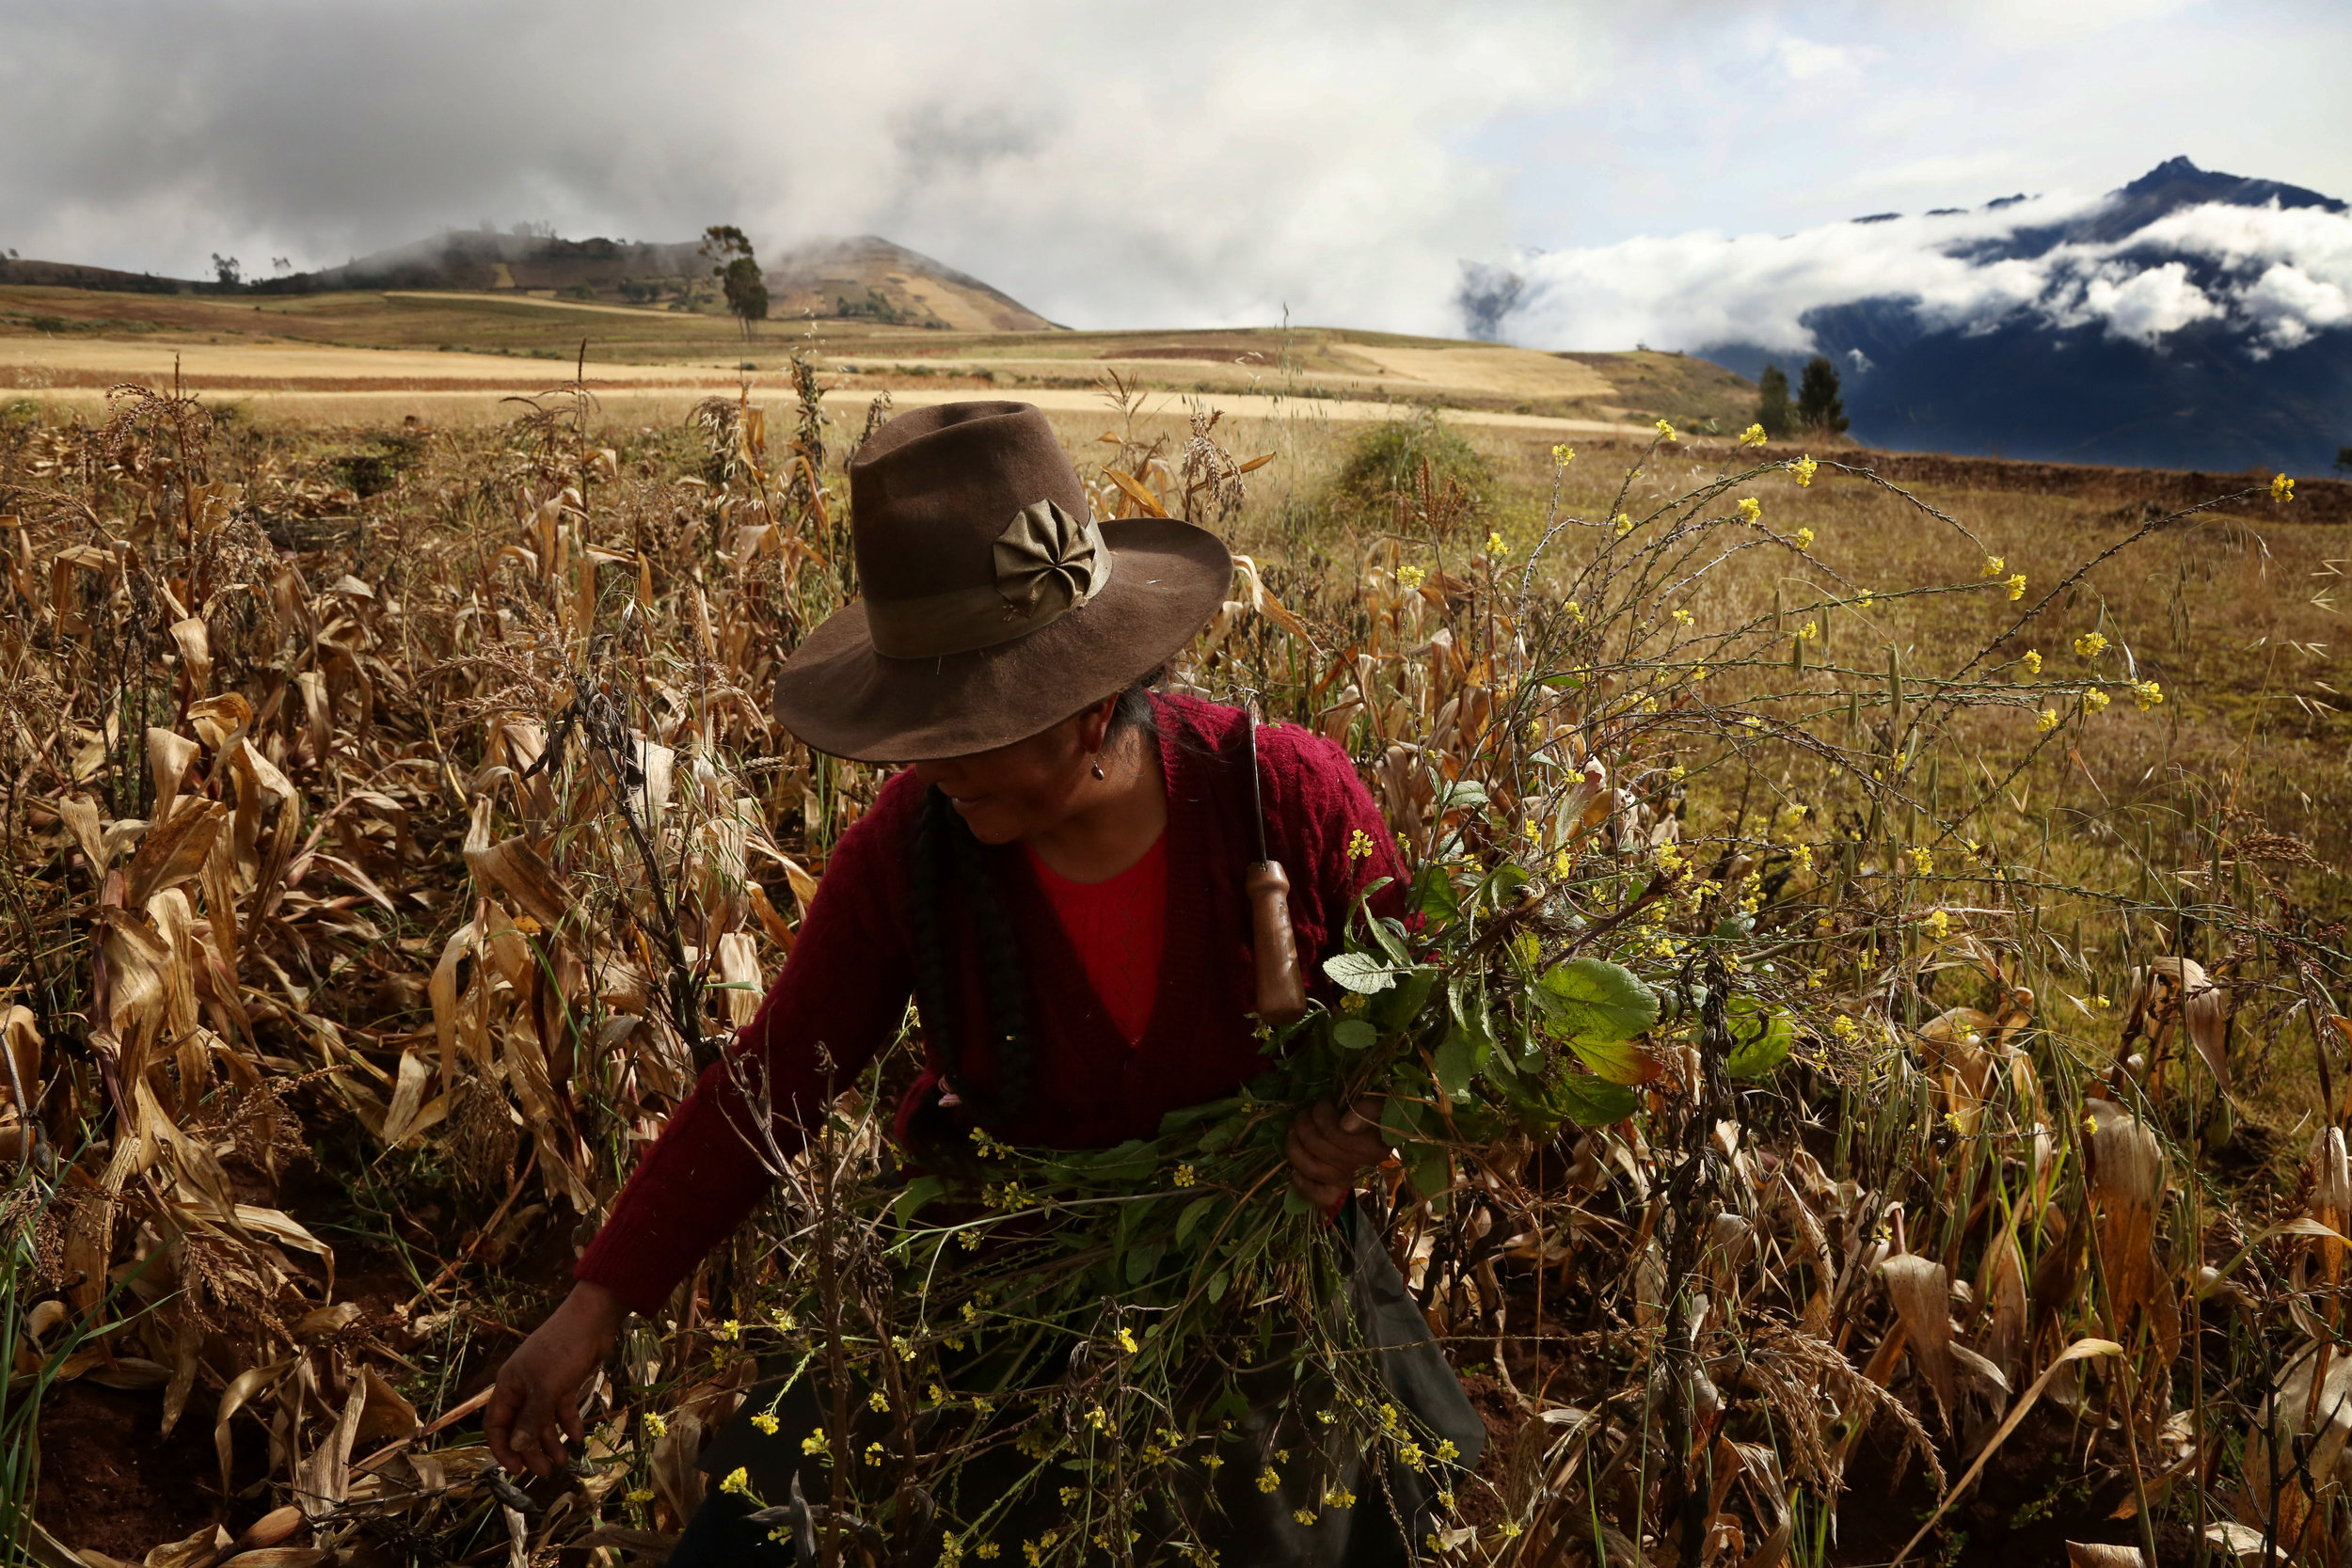 Gregory Corihuman clears weeds from a field of fava beans in Kacllaraccay, Peru.